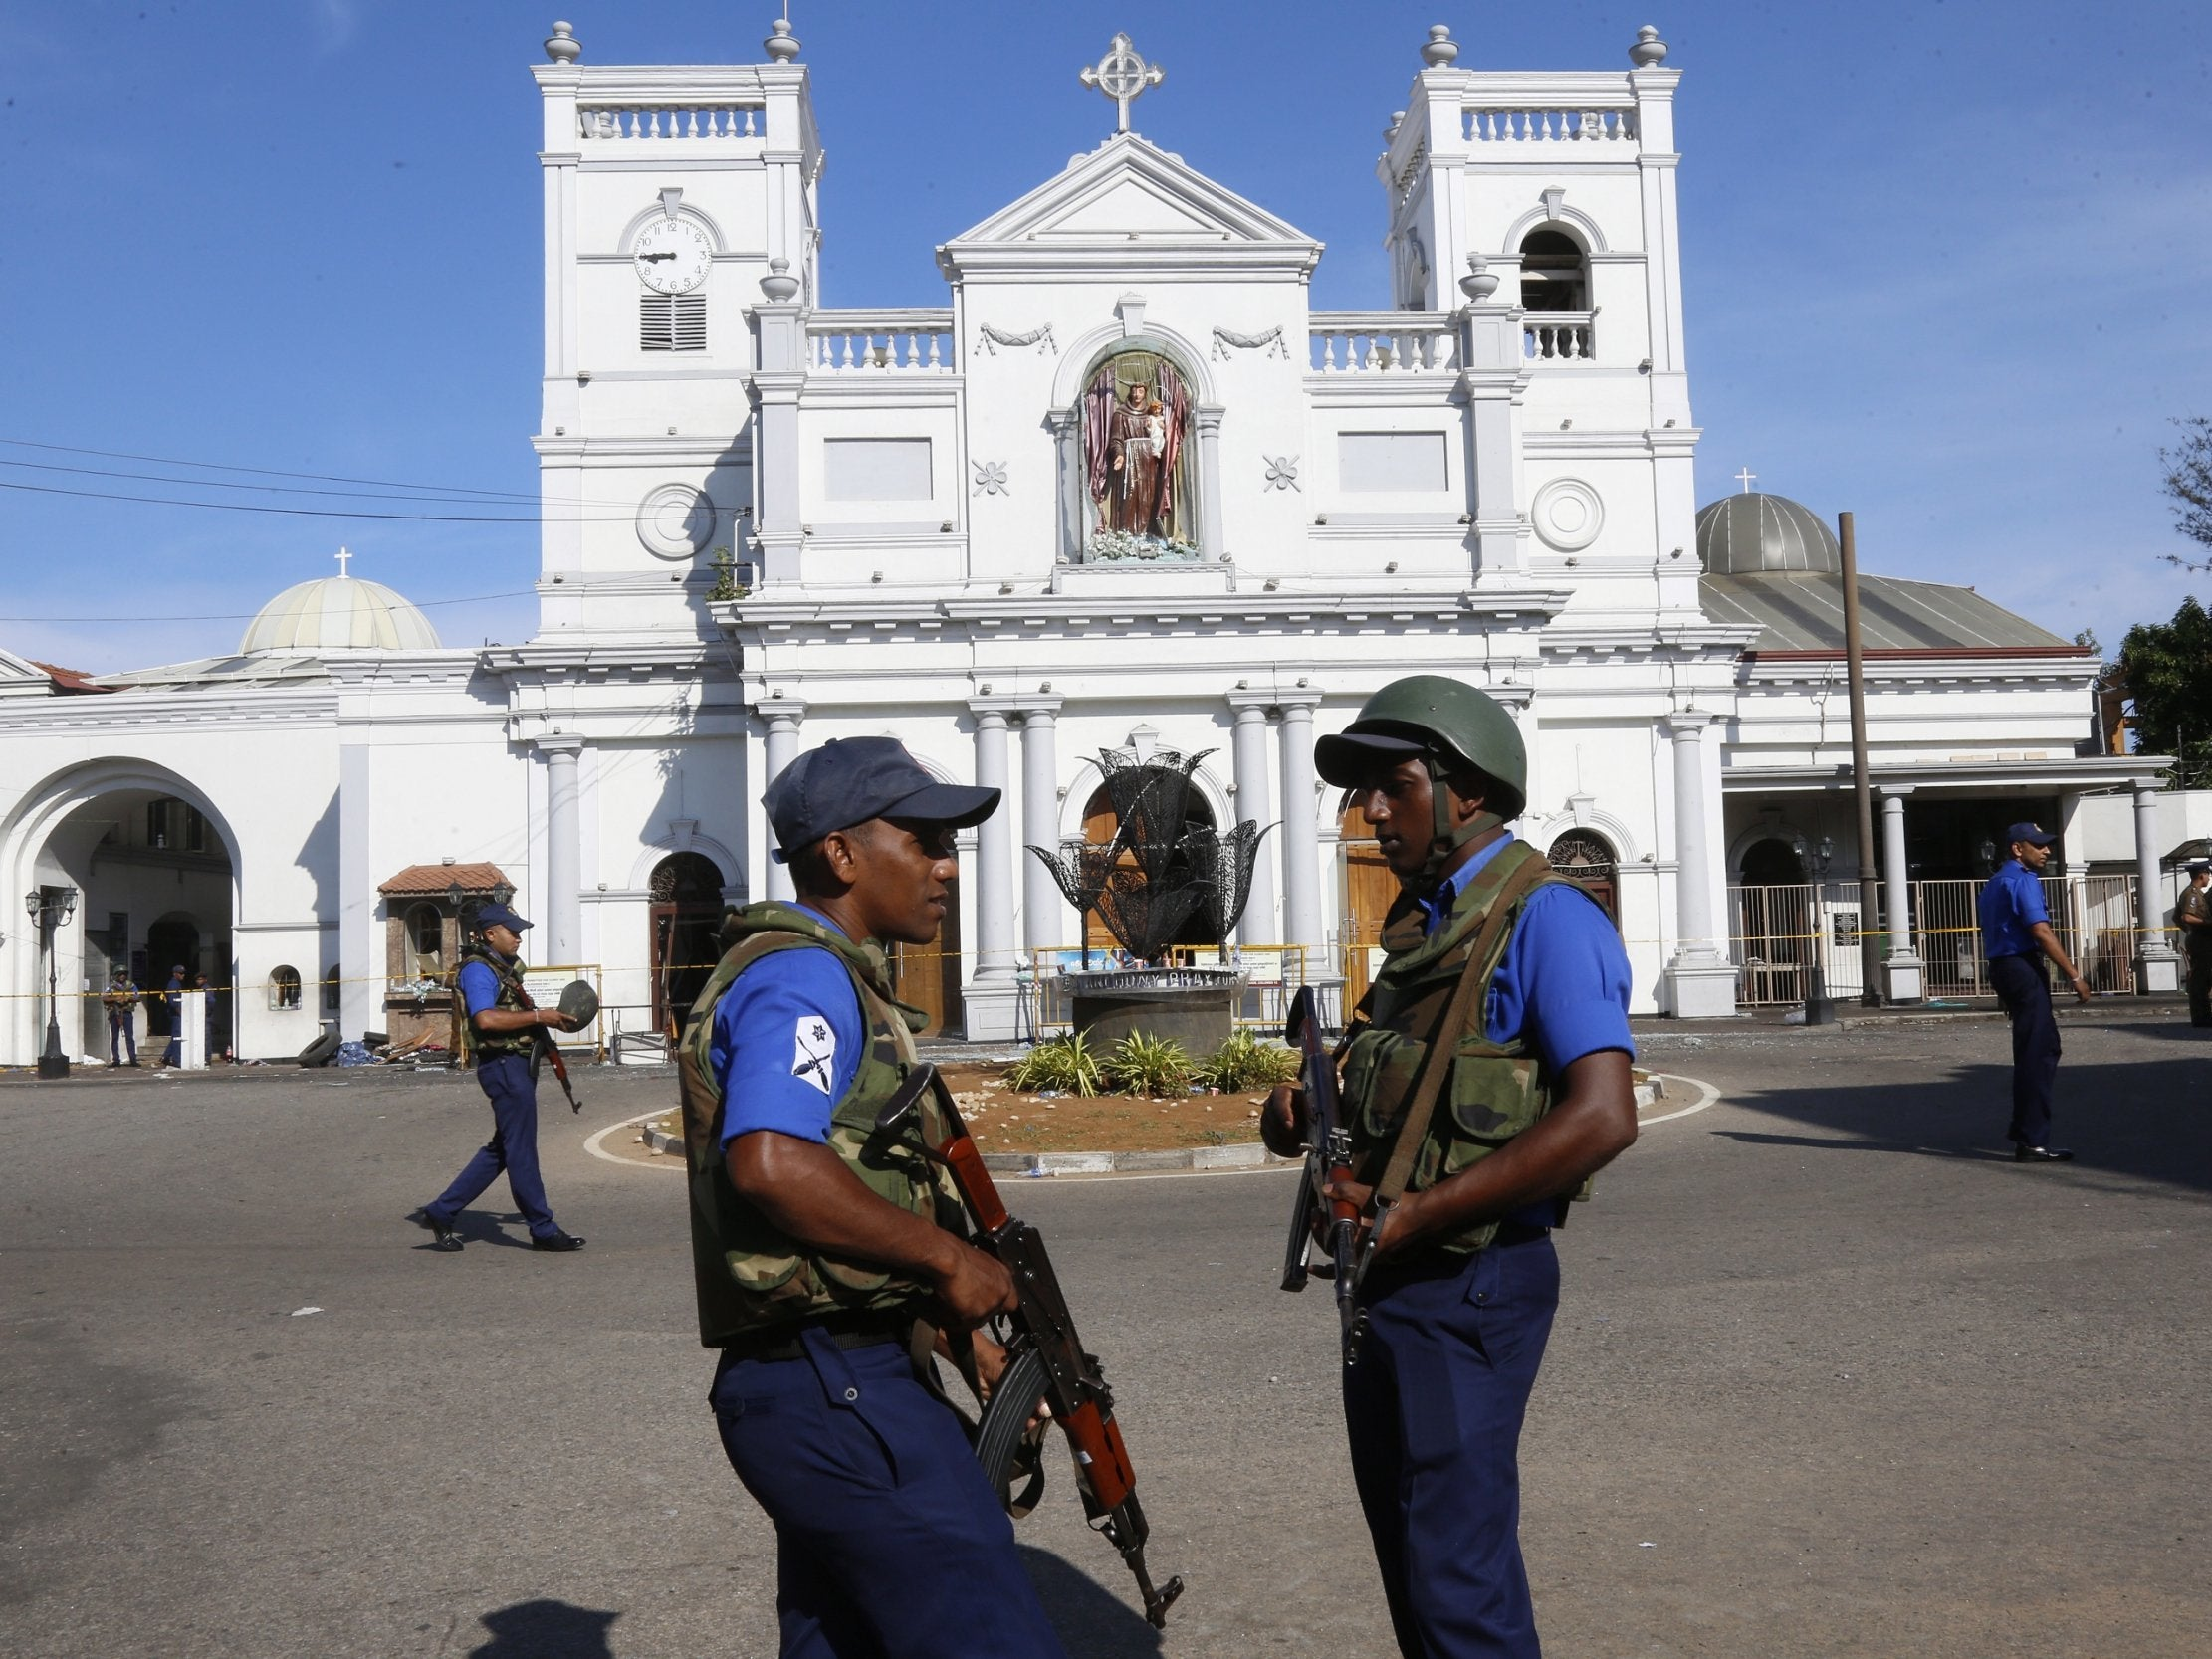 Sri Lanka: Australian government tells its citizens to 'reconsider your need to travel'